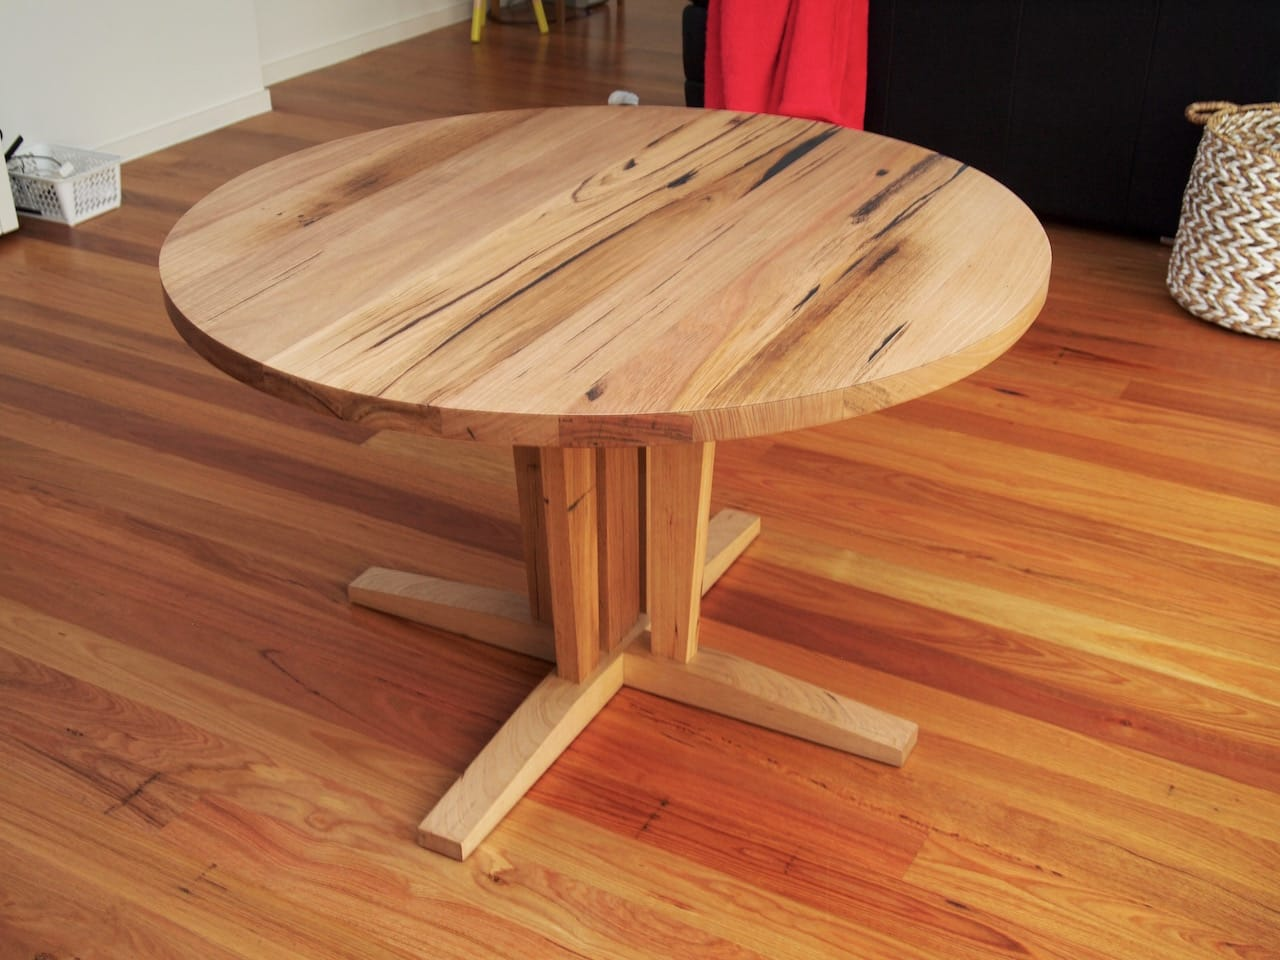 Round table1 small.jpg